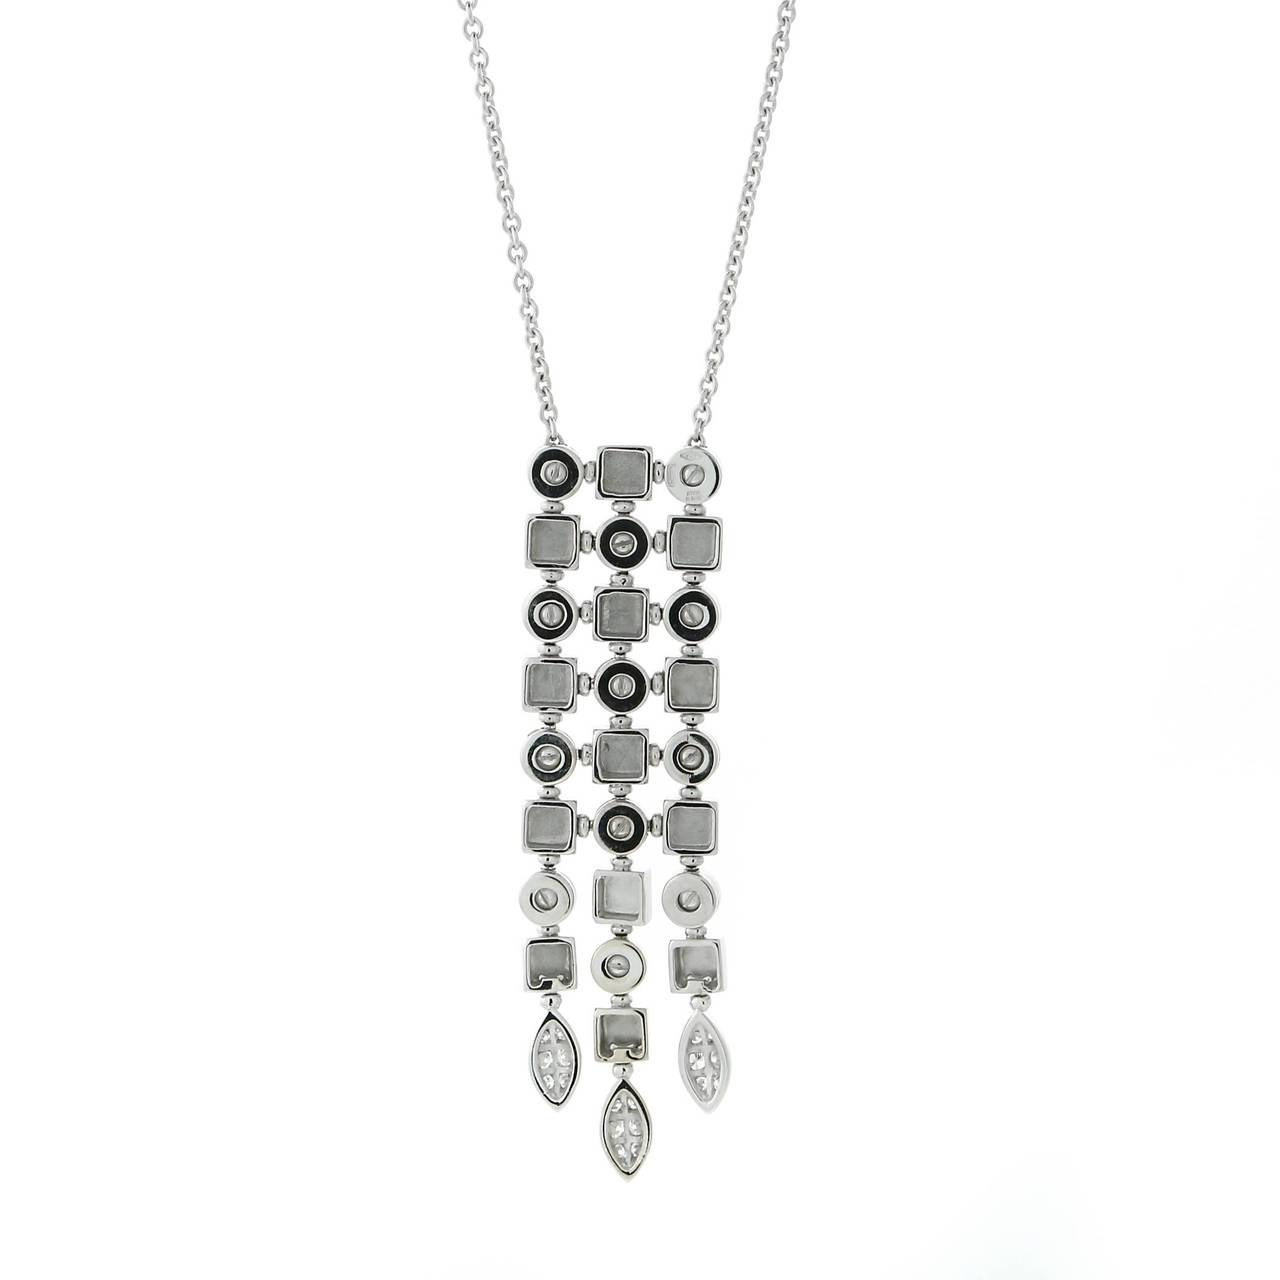 Designed to impress this authentic Bulgari Lucea necklace is adorned with the finest Bulgari Vs Quality round brilliant cut diamonds set in 18k white gold.   Dimensions: .62″ Inches wide by 2.40″ Inches in length Necklace Length: Adjustable